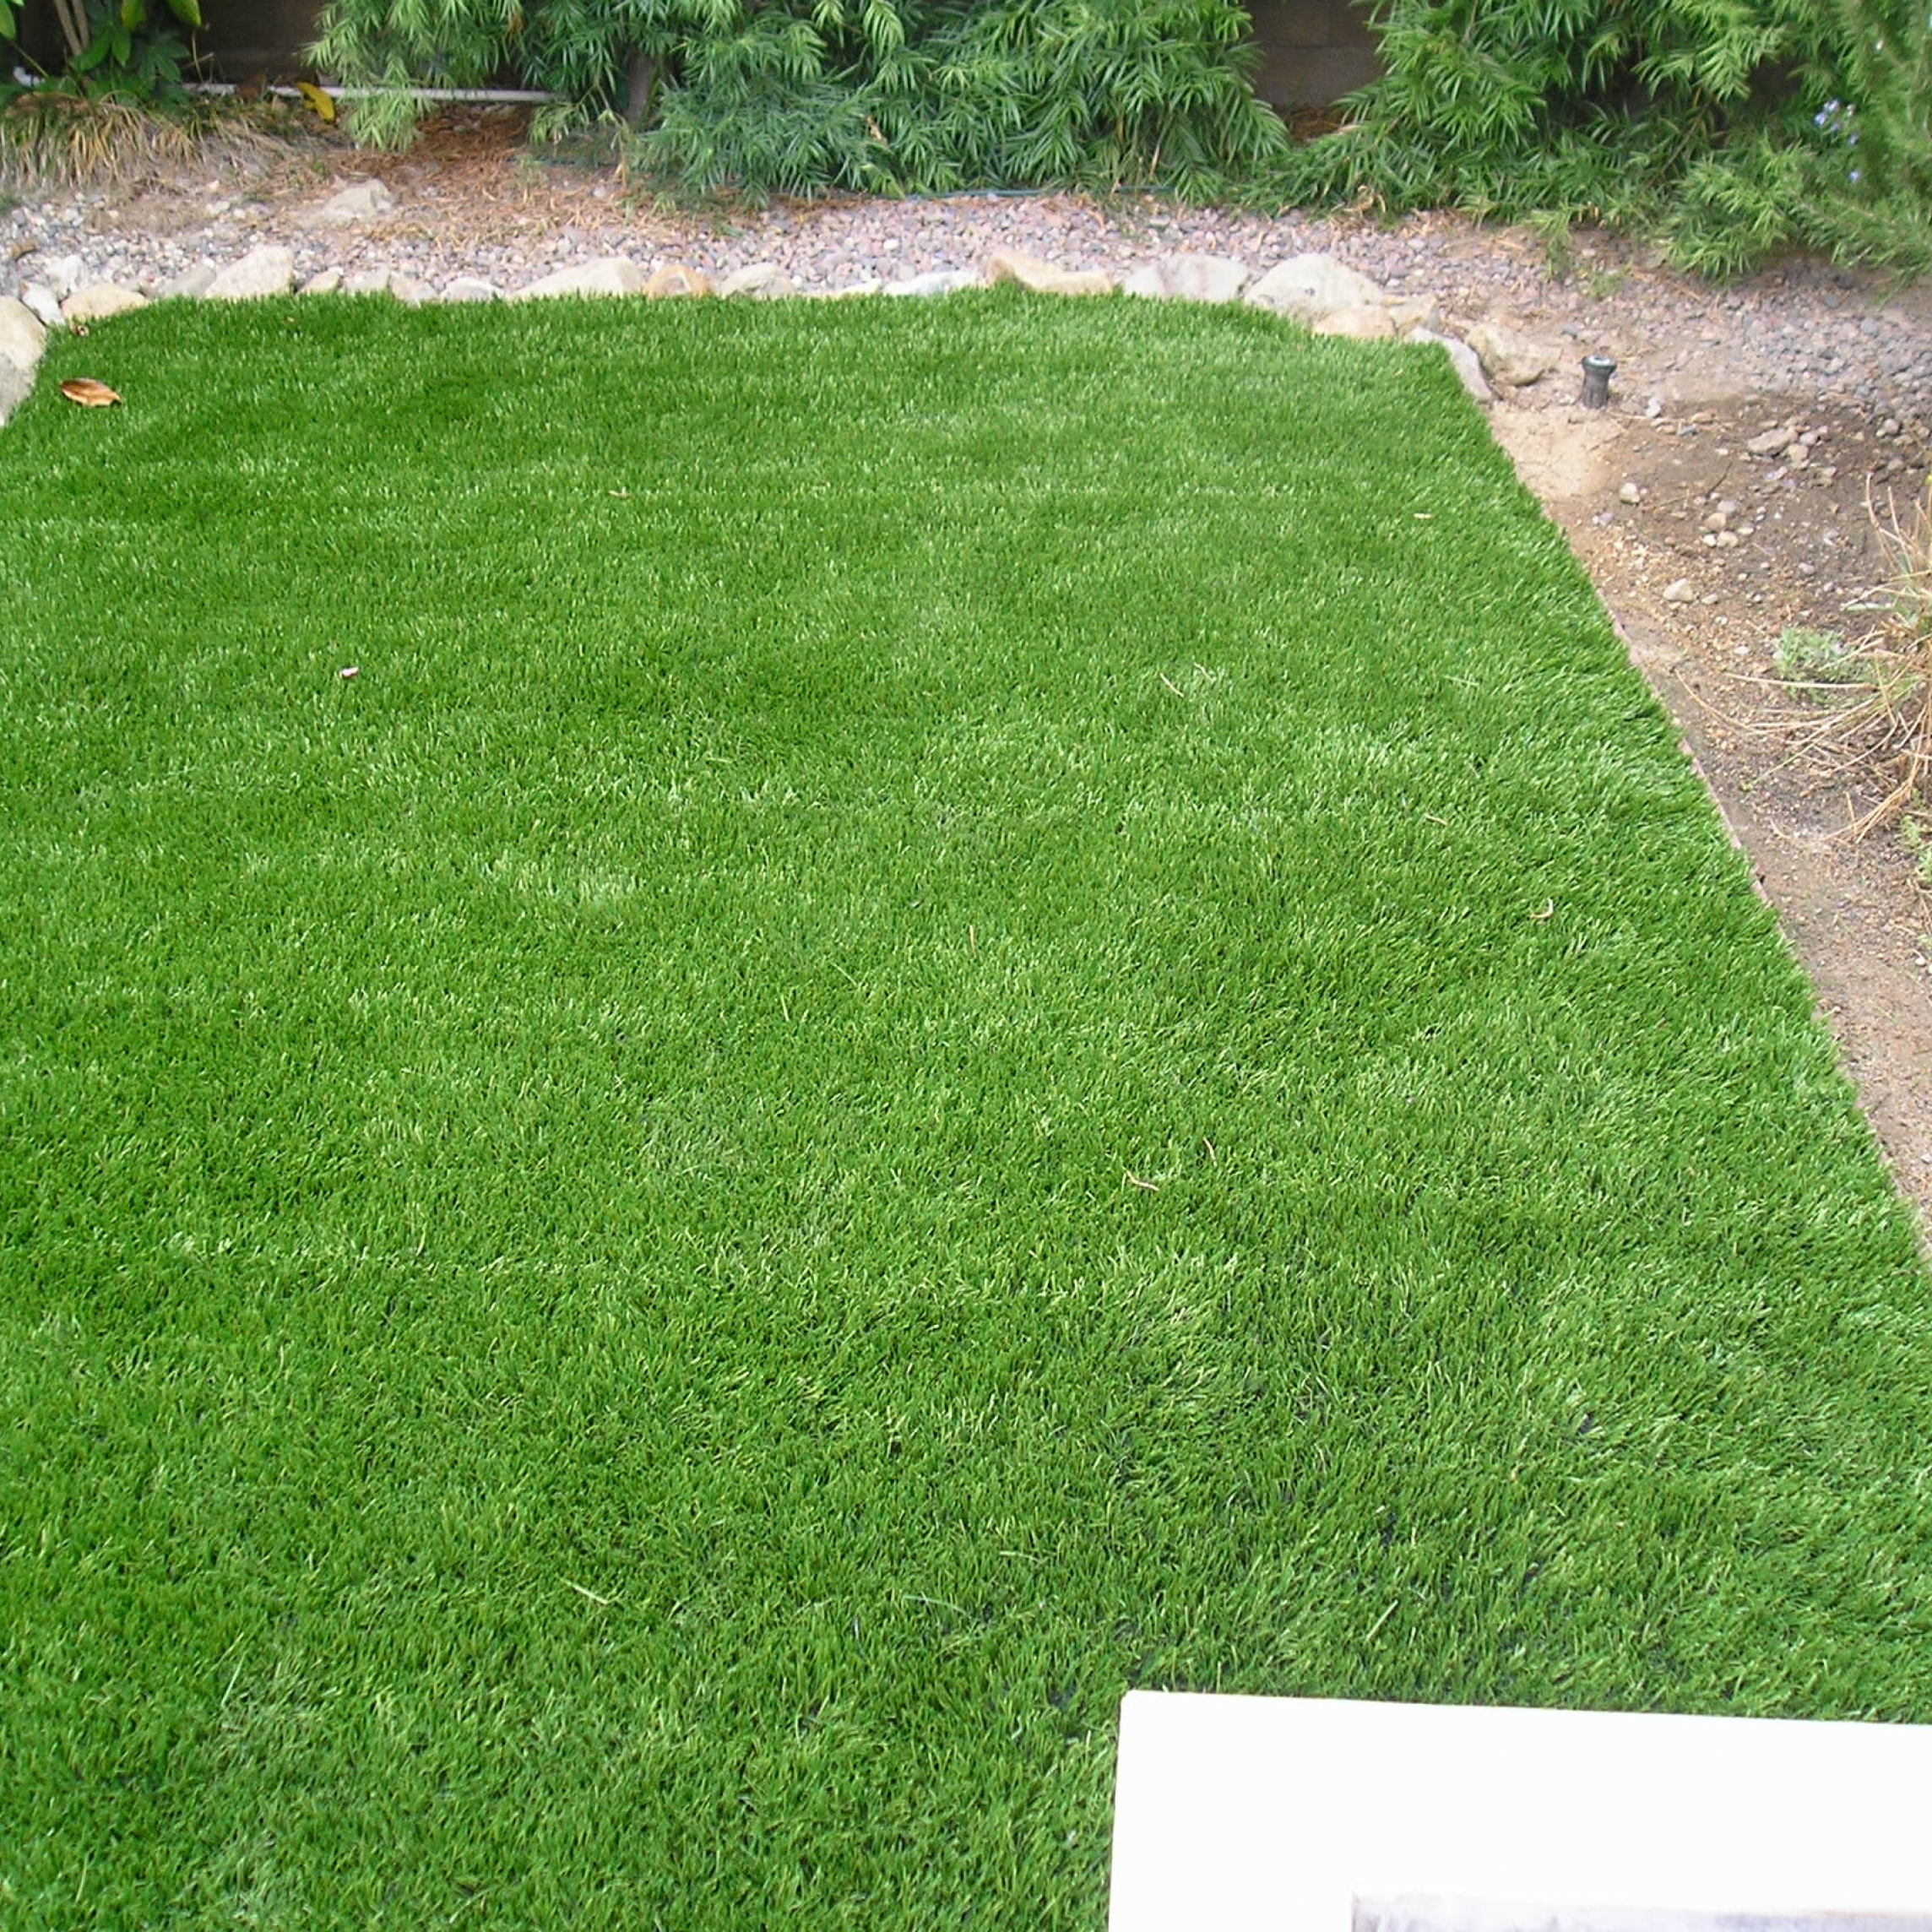 Super Natural 60 artificial grass installation,installing artificial grass,artificial turf installation,how to install artificial turf,turf installation